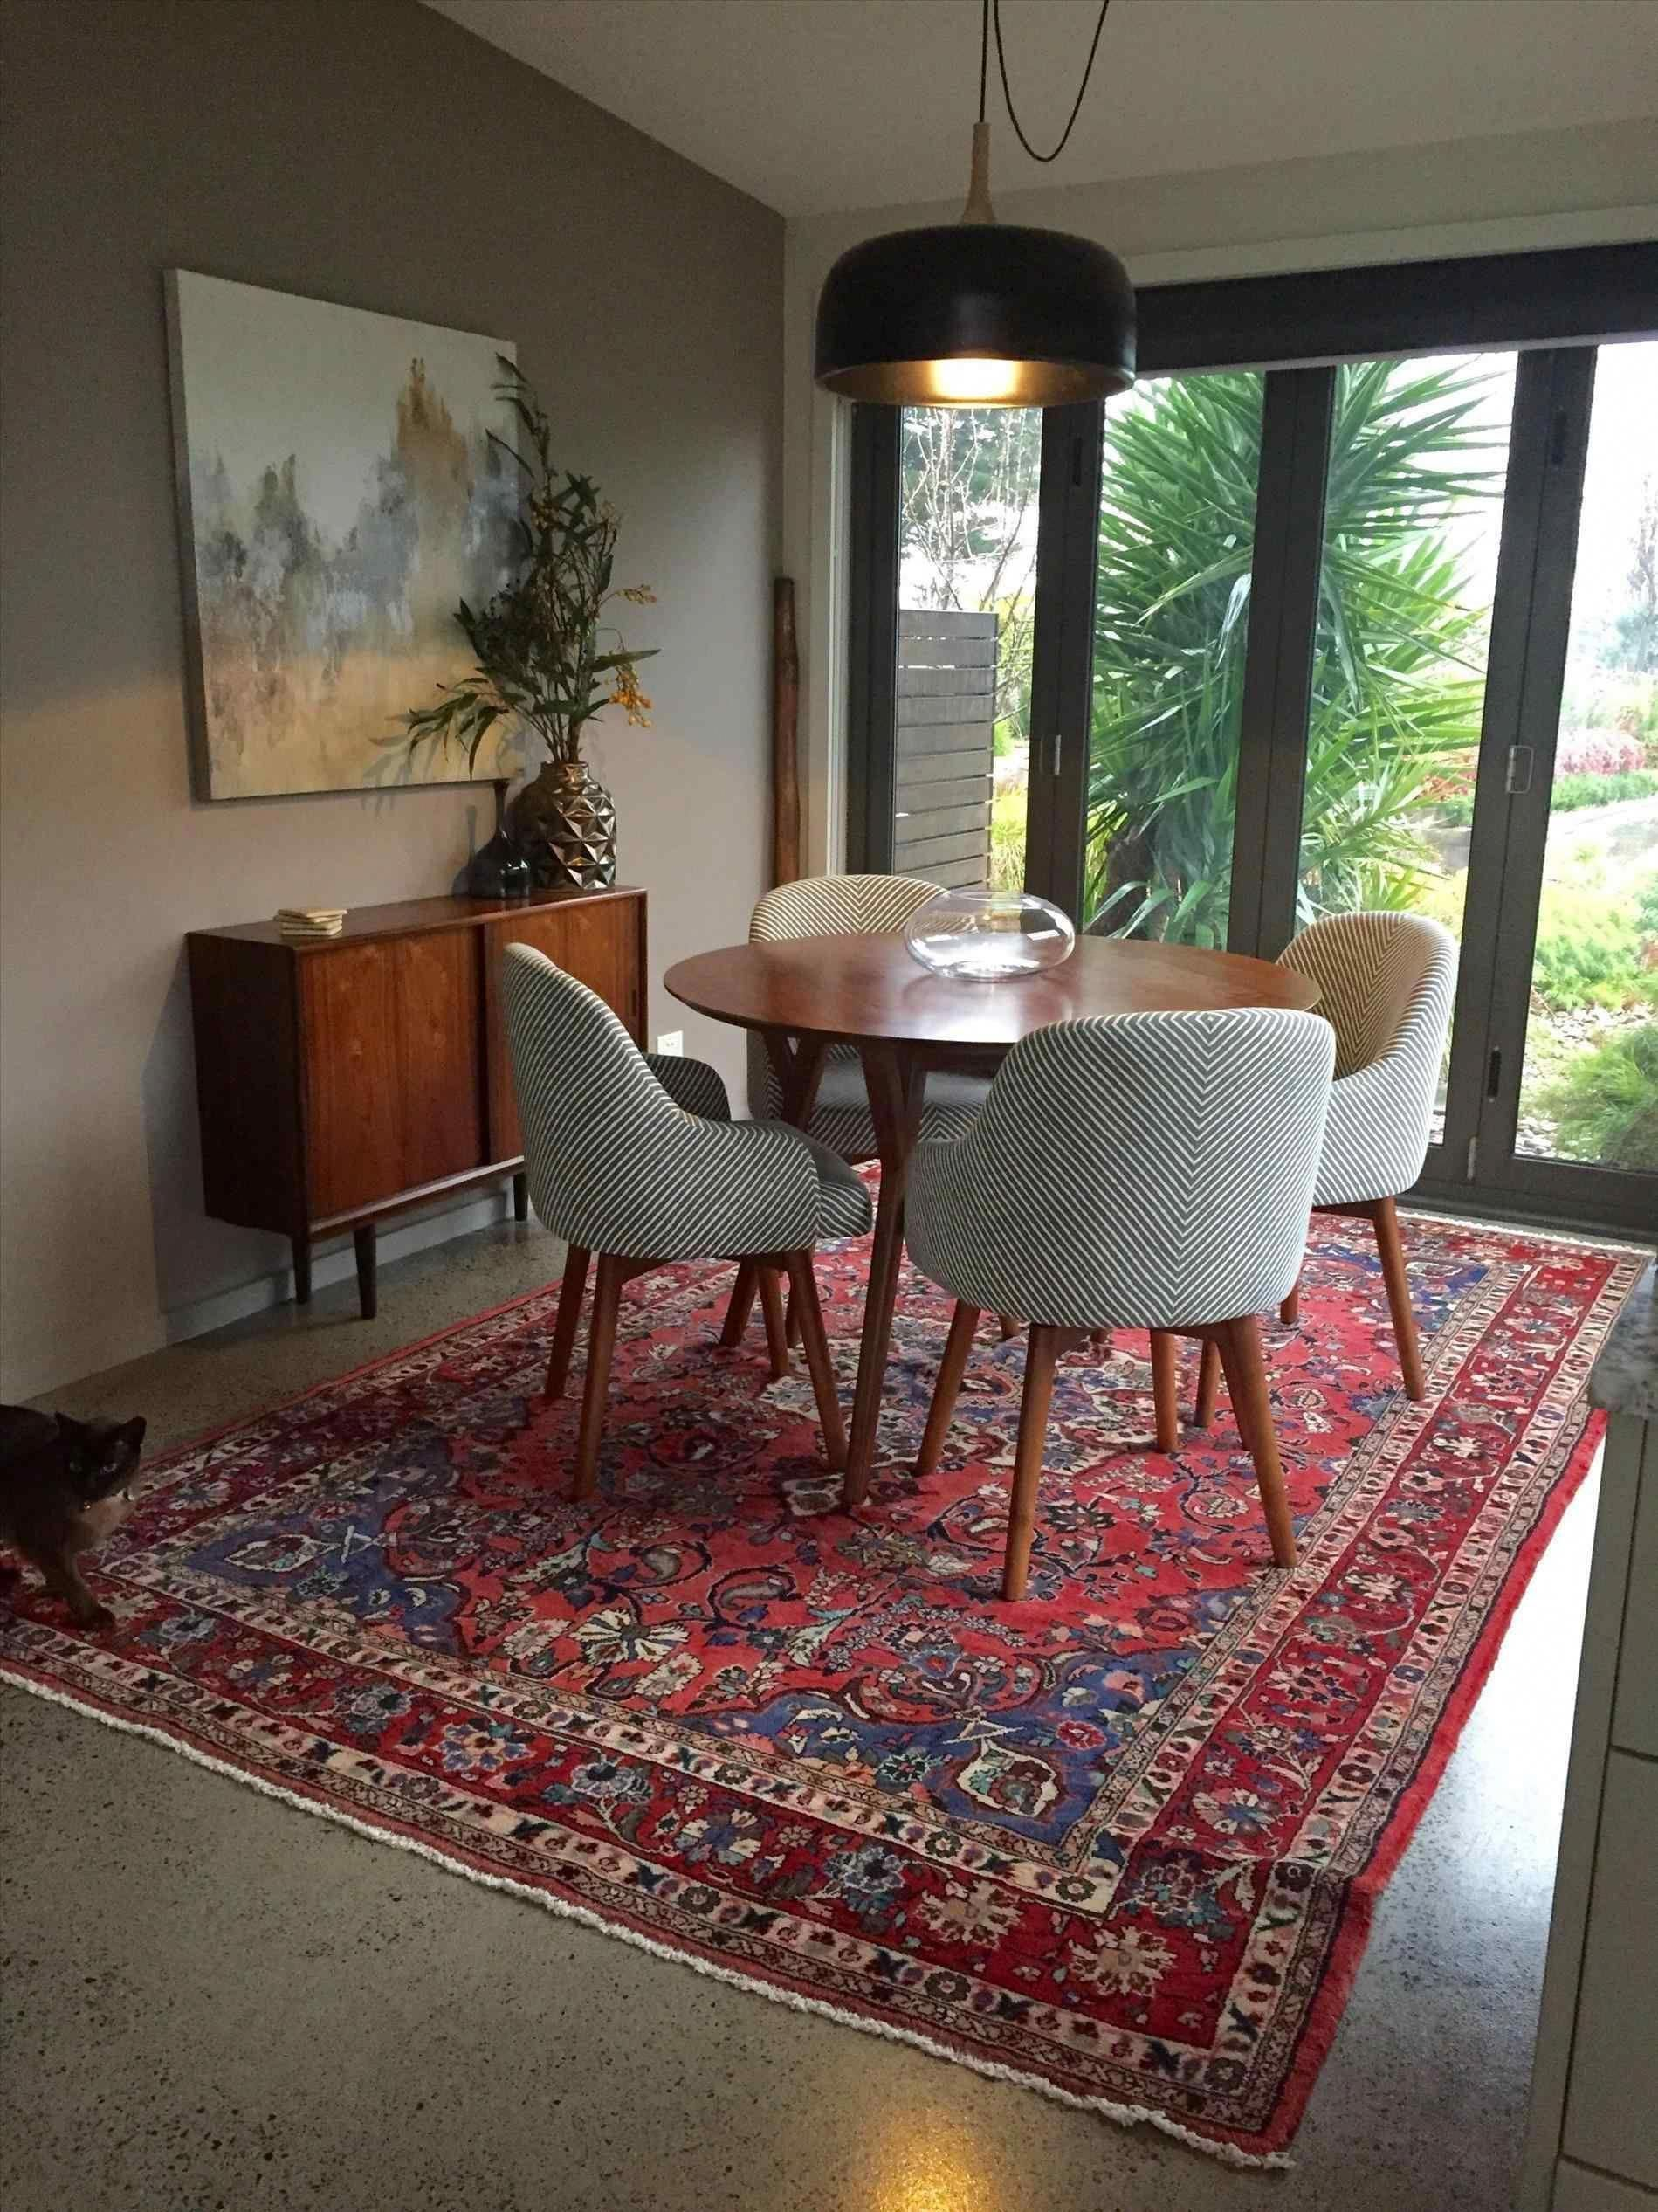 How To Decorate With Persian Rugs Best 10 Pictures Diningroom Amusing Pics Of Hanging Ceili Persian Rug Living Room Rugs In Living Room Luxury Dining Room